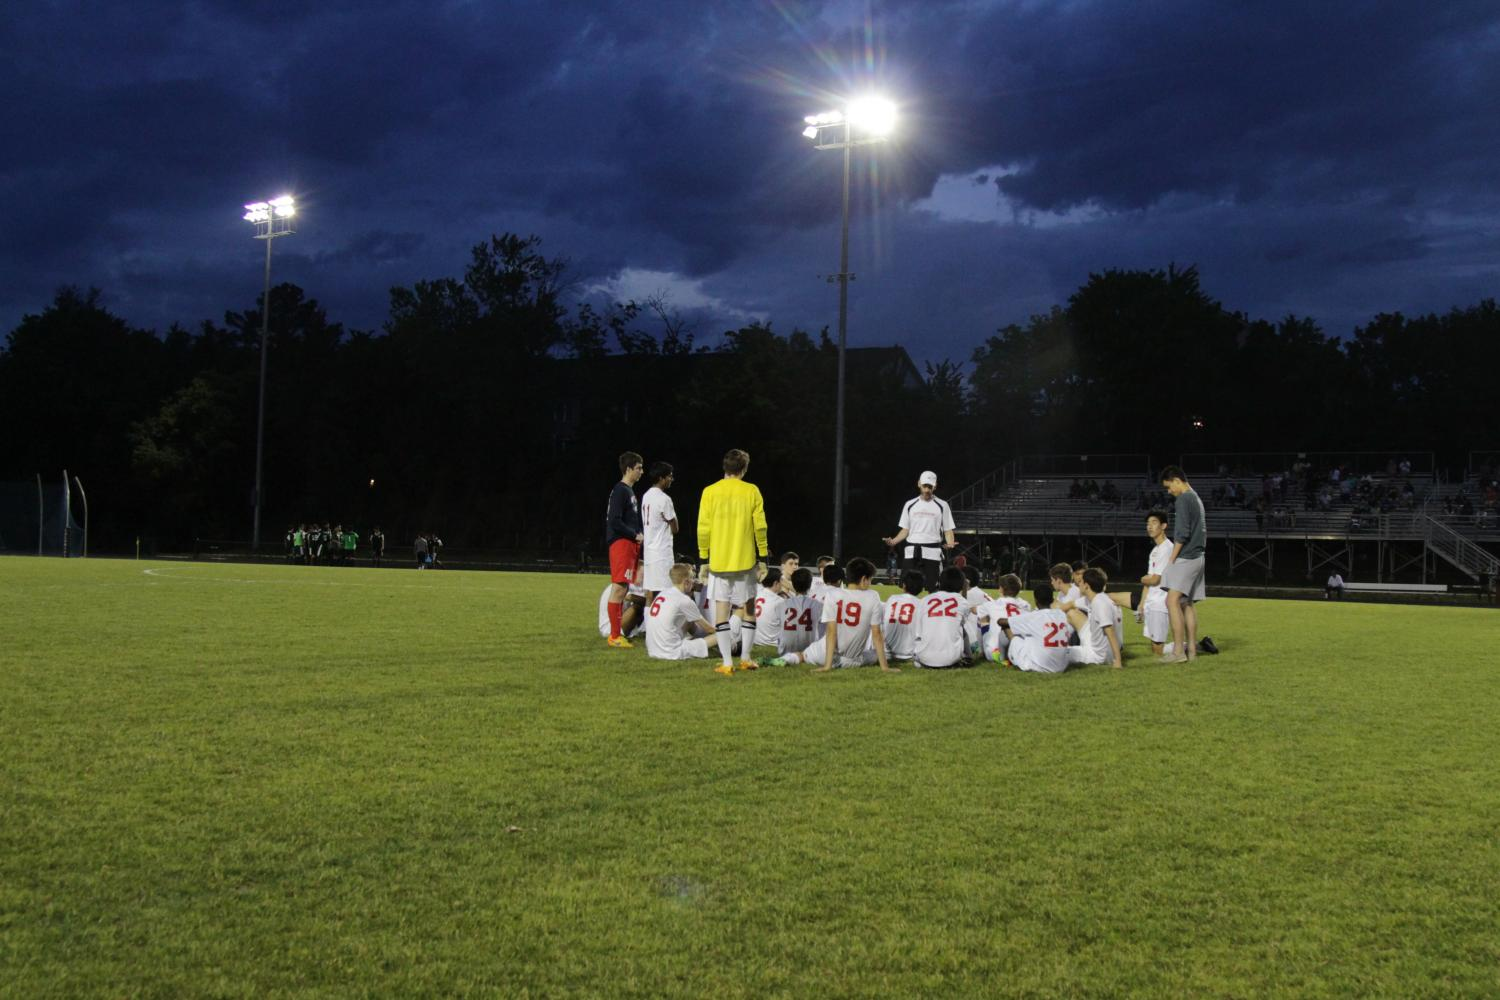 The boys soccer team get into circle with their head coach, Mr. Sean Burke, taking the lead in the discussion.